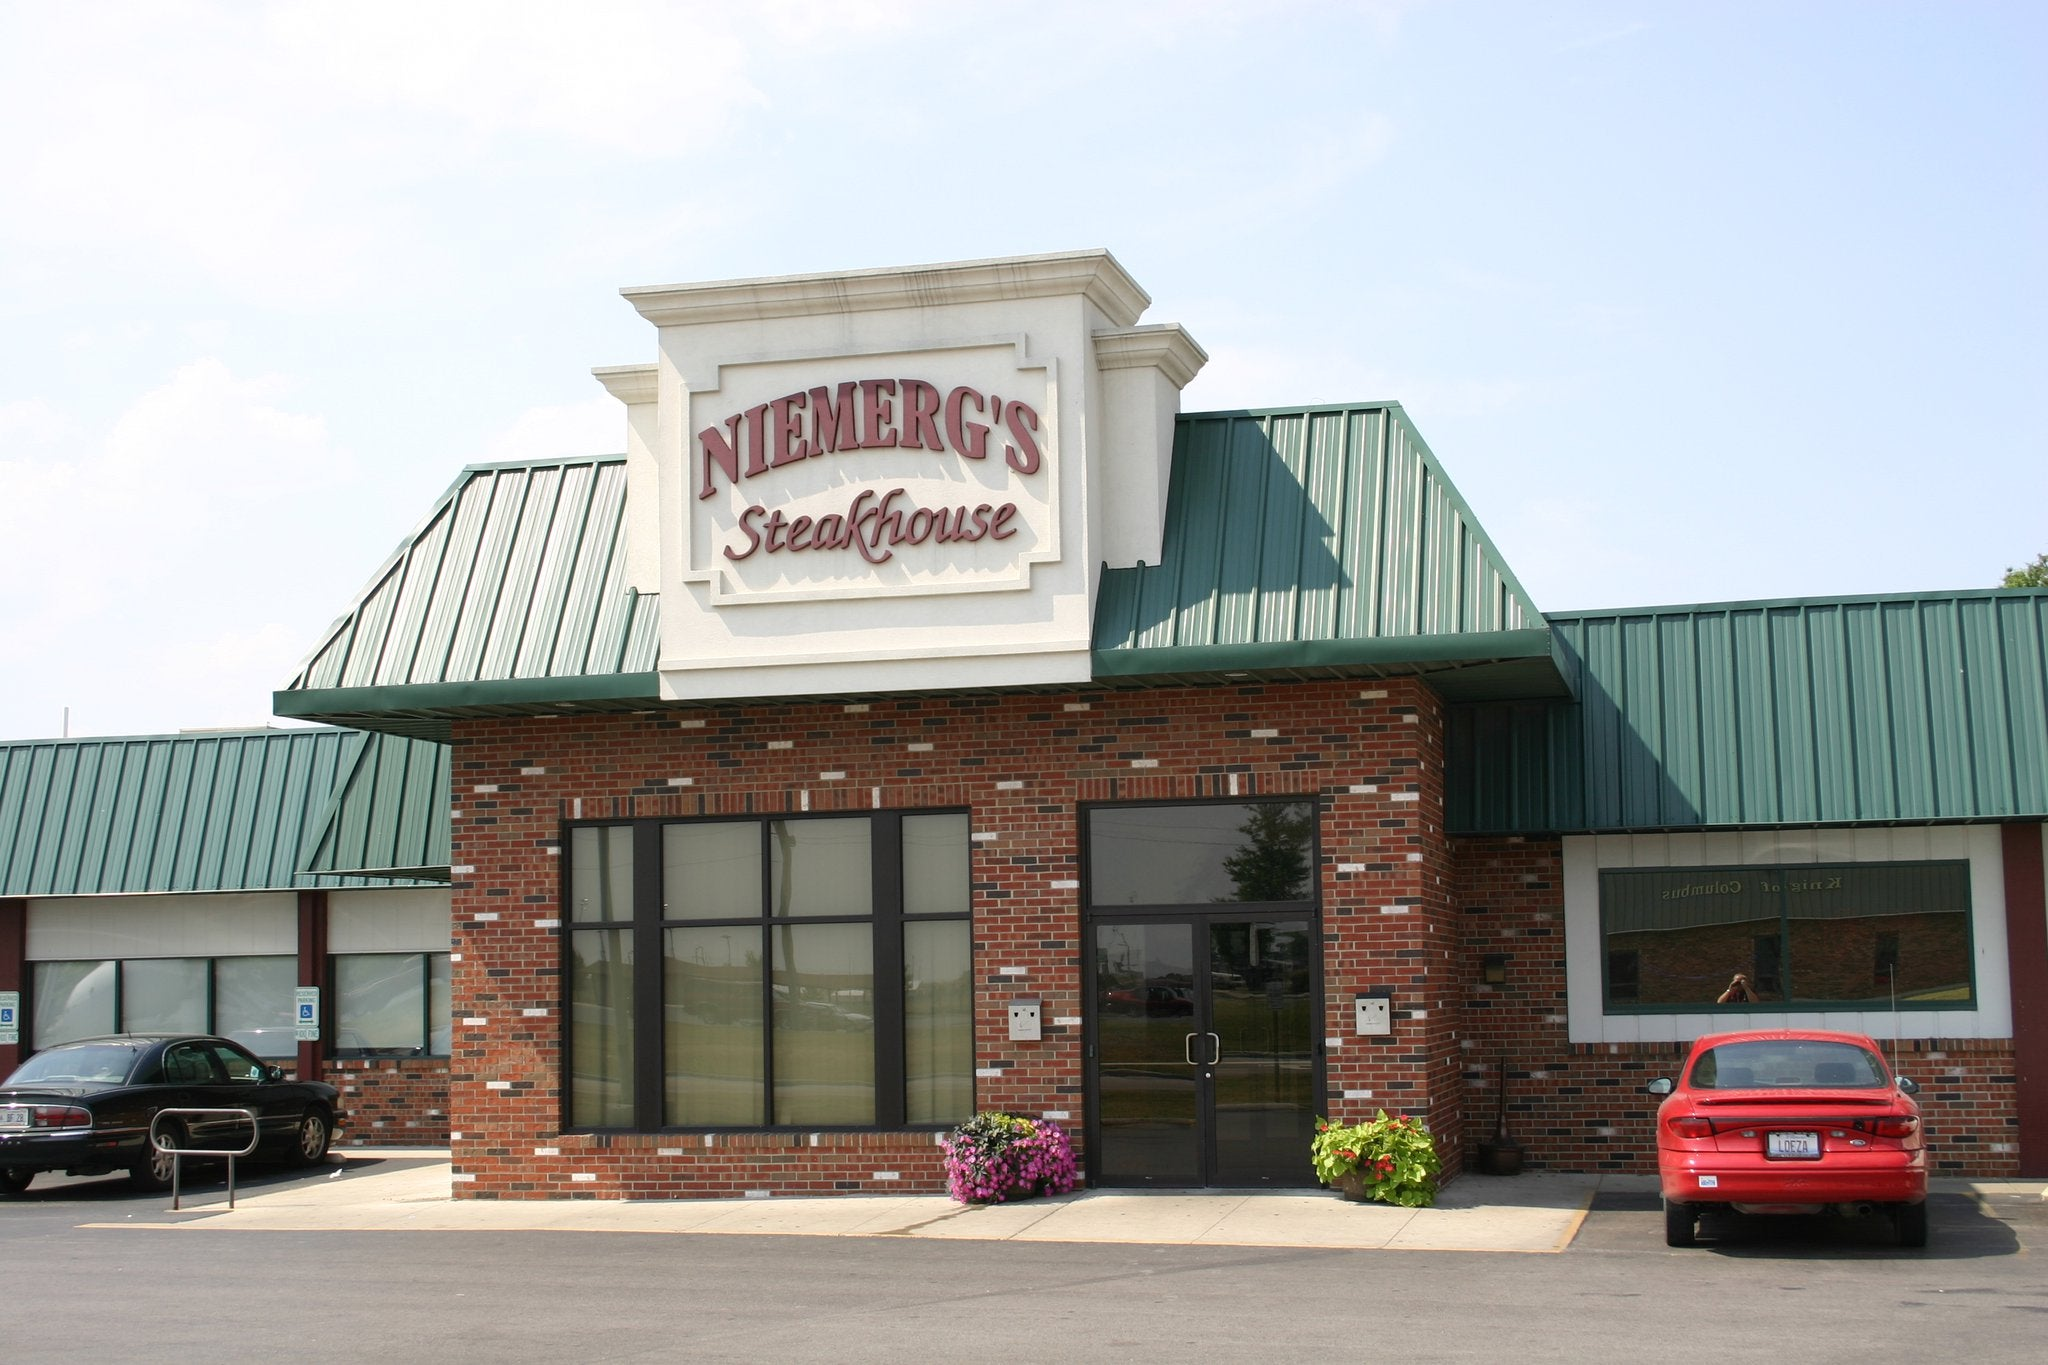 Niemerg's Steakhouse,